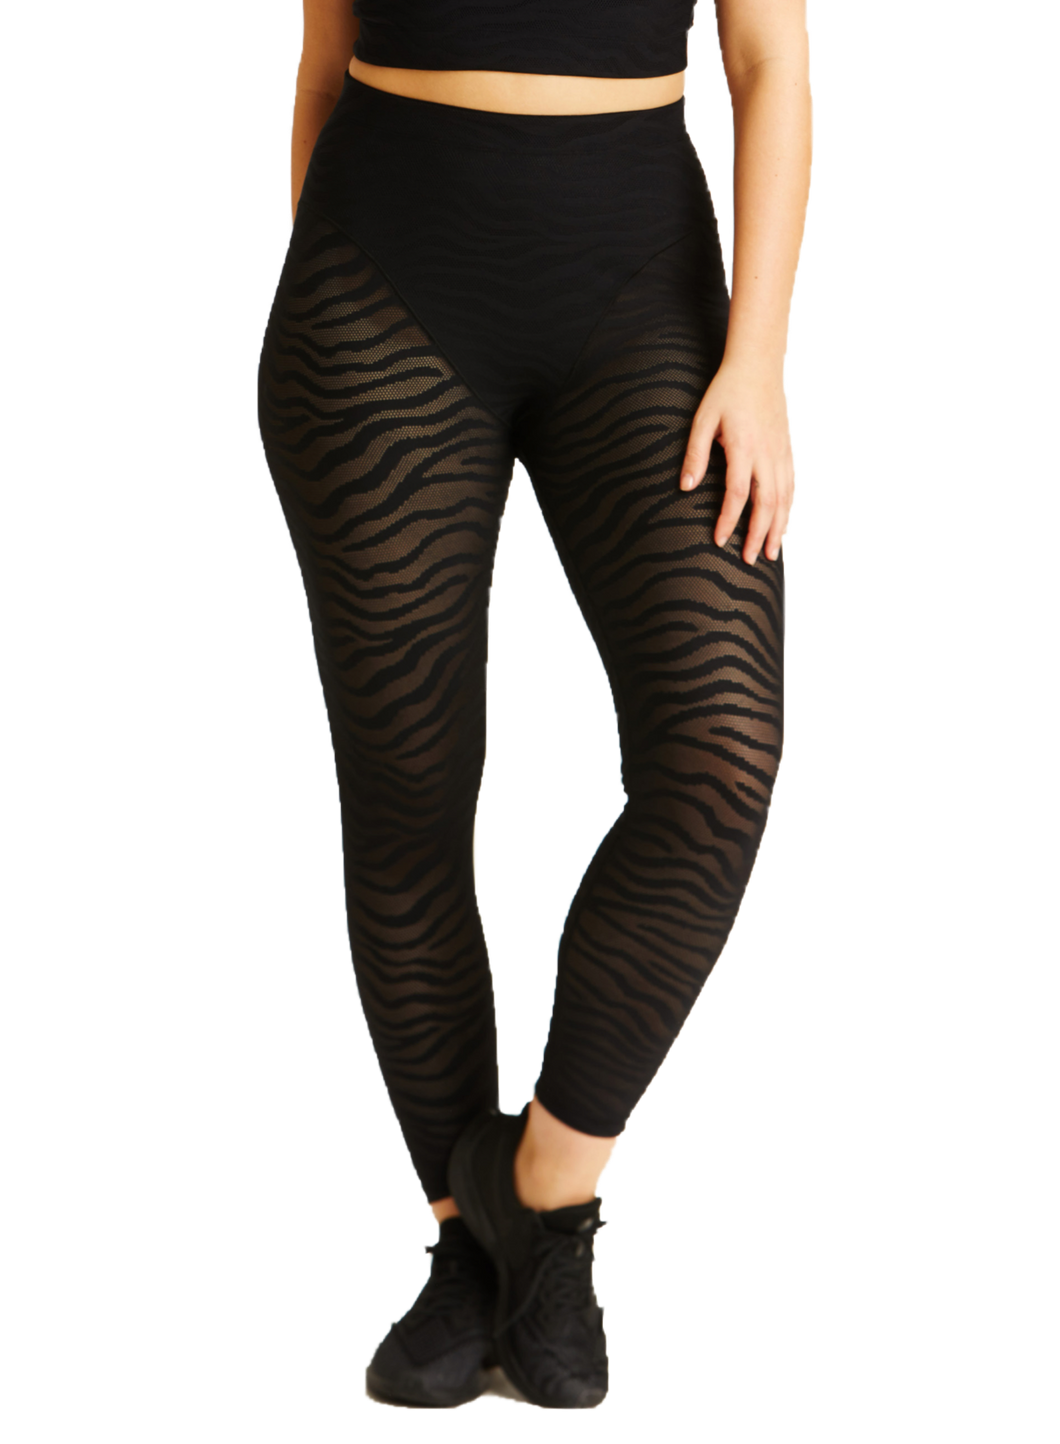 Adam Selman Sport Sheer Tiger Legging | Activewear - Good Goddess